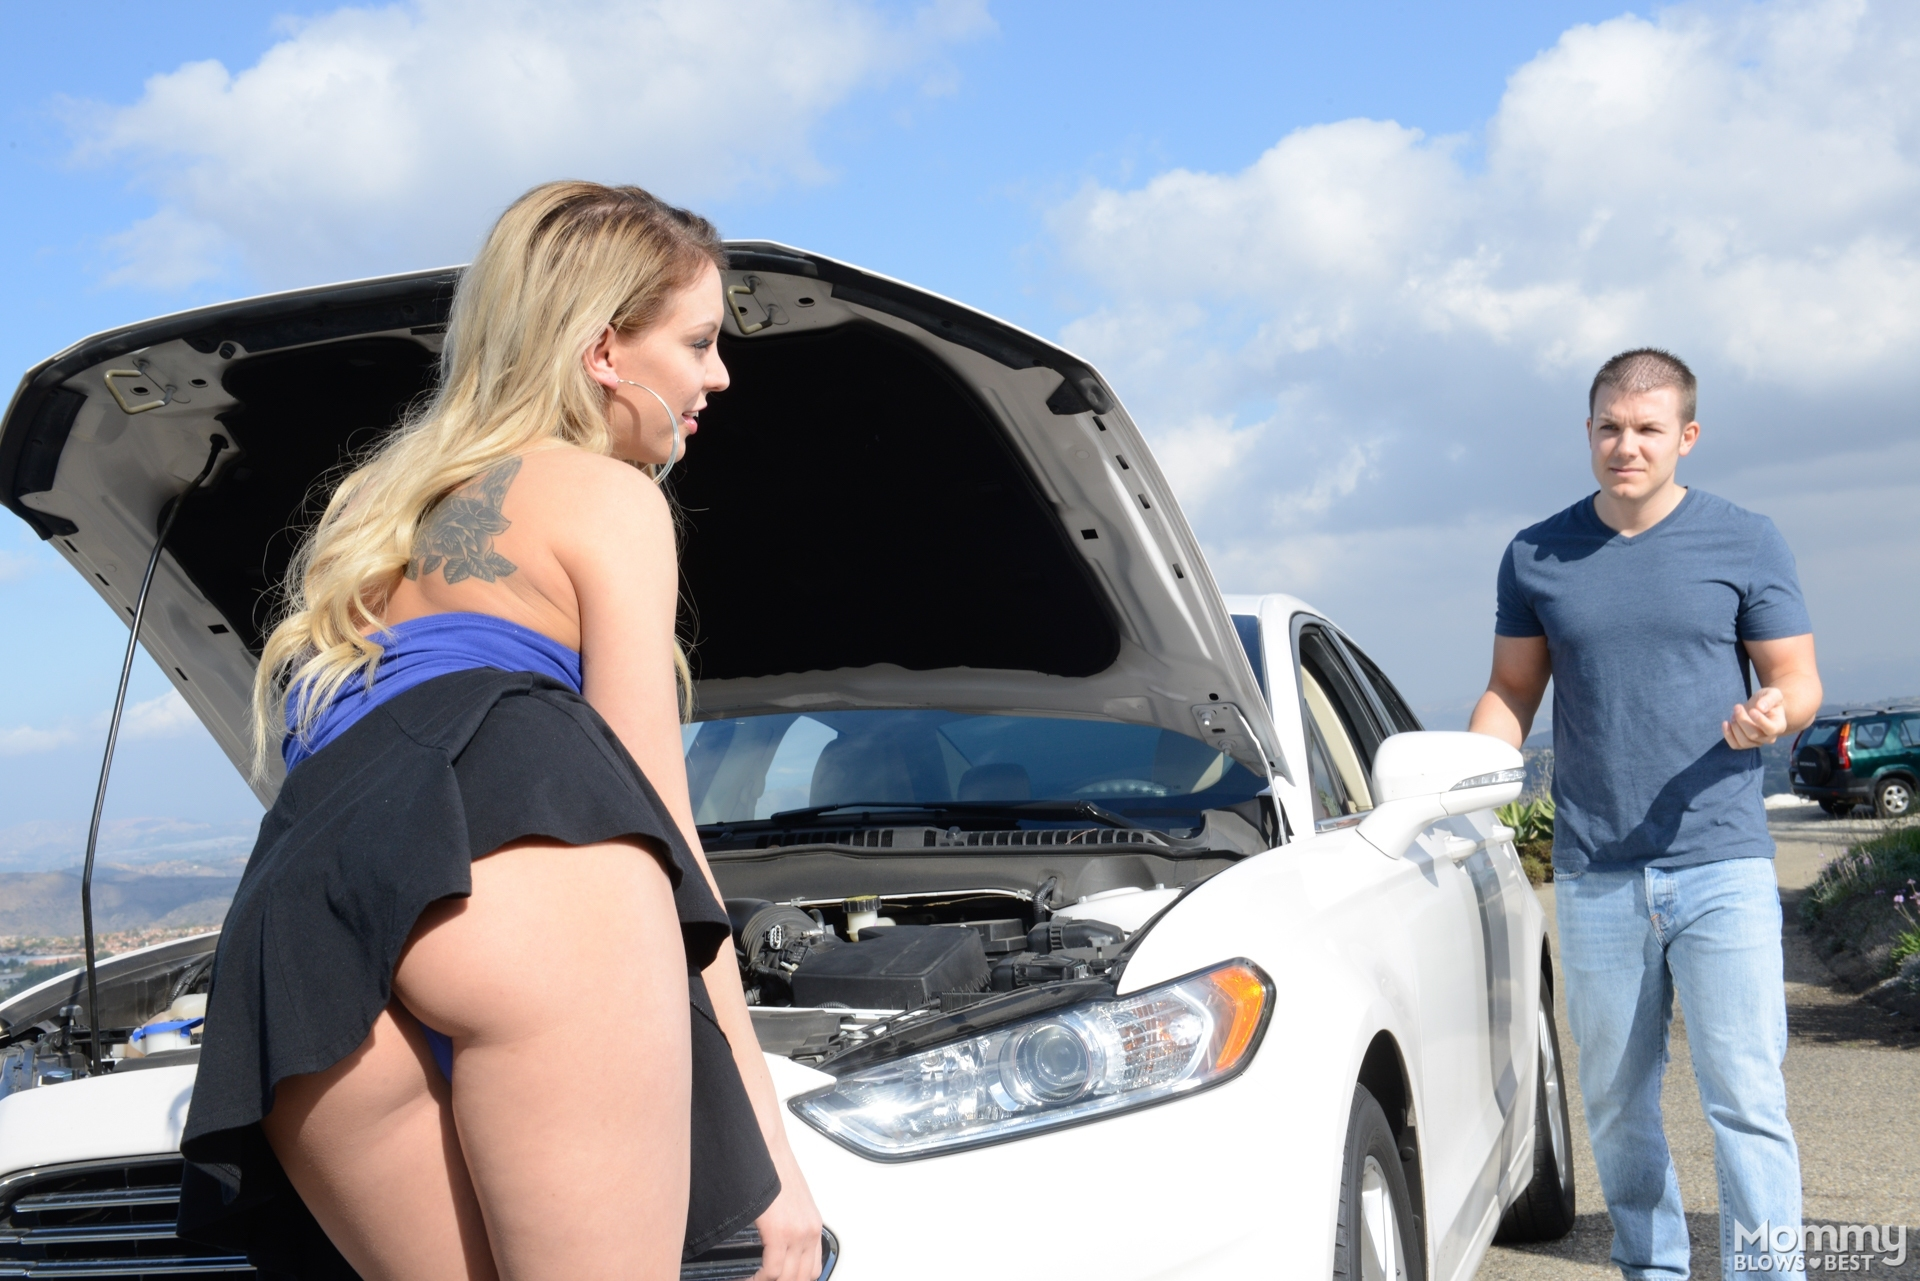 Kenzie Taylor Suck The Cock Of Her Vehicle Repairman 608084 Blonde With Big Tits Gets A Mouthful Of Cum